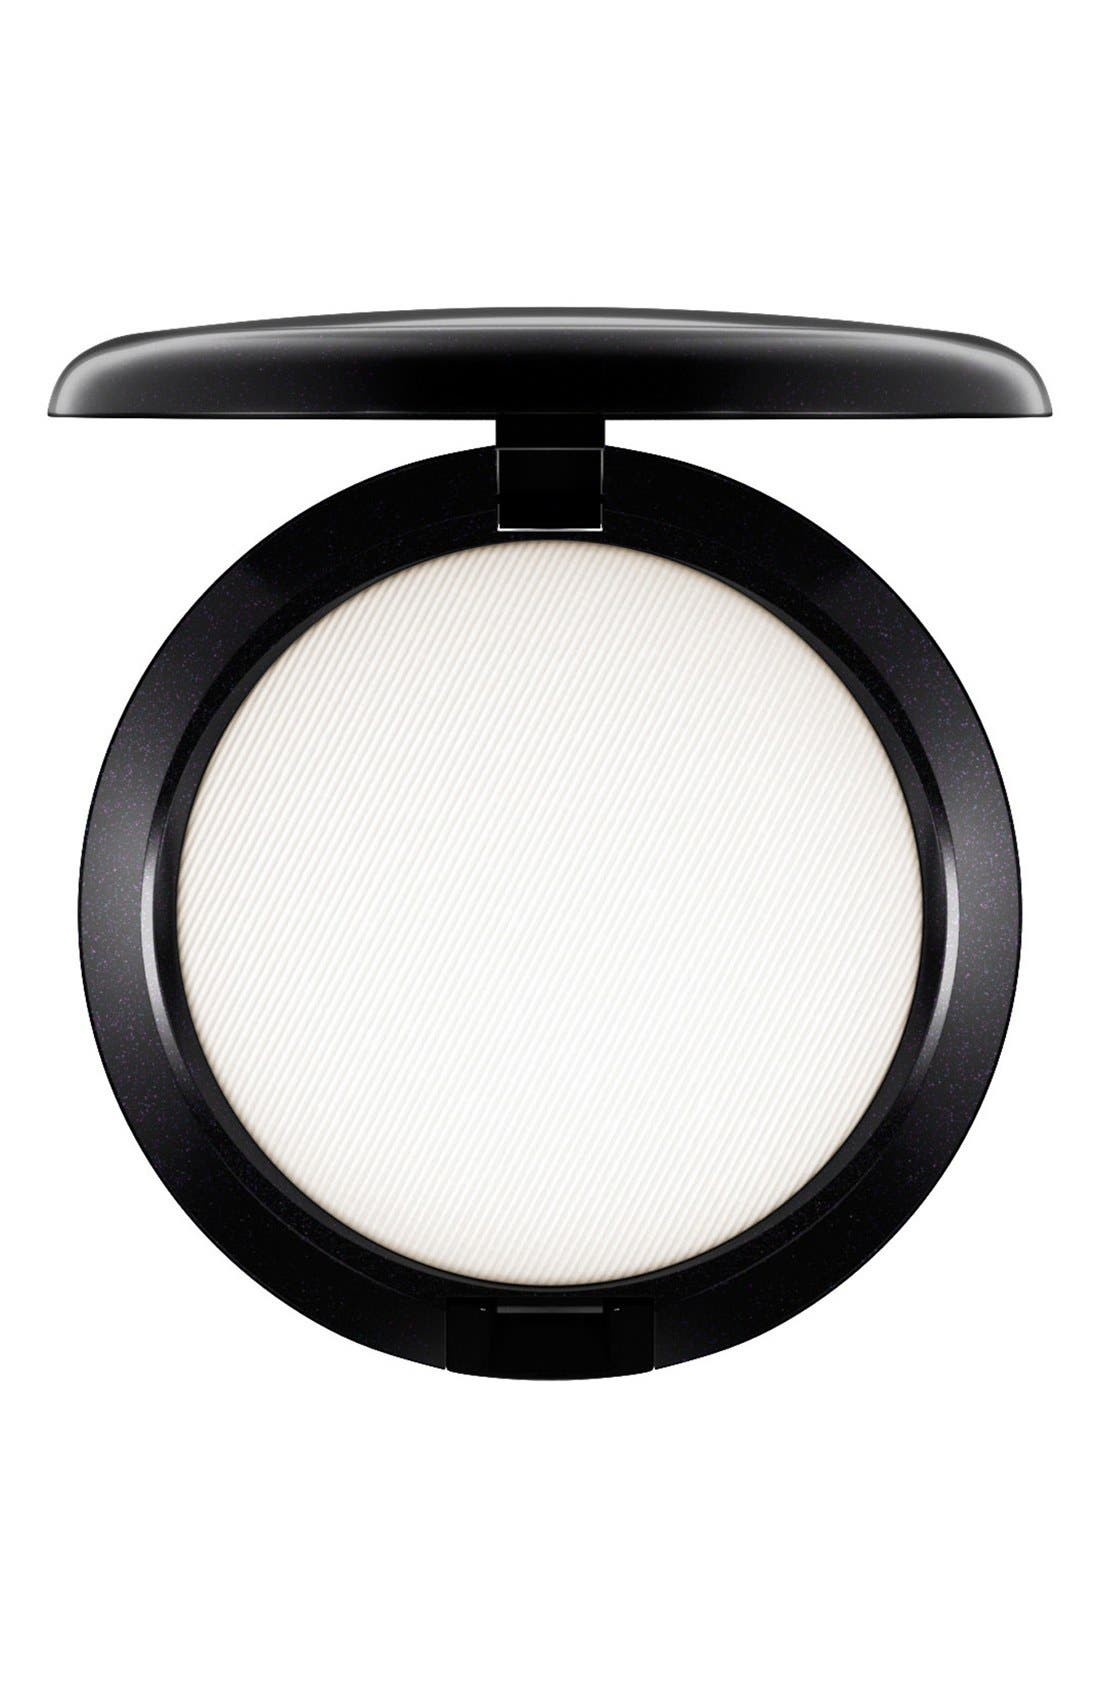 MAC 'Prep + Prime' Transparent Pressed Finishing Powder